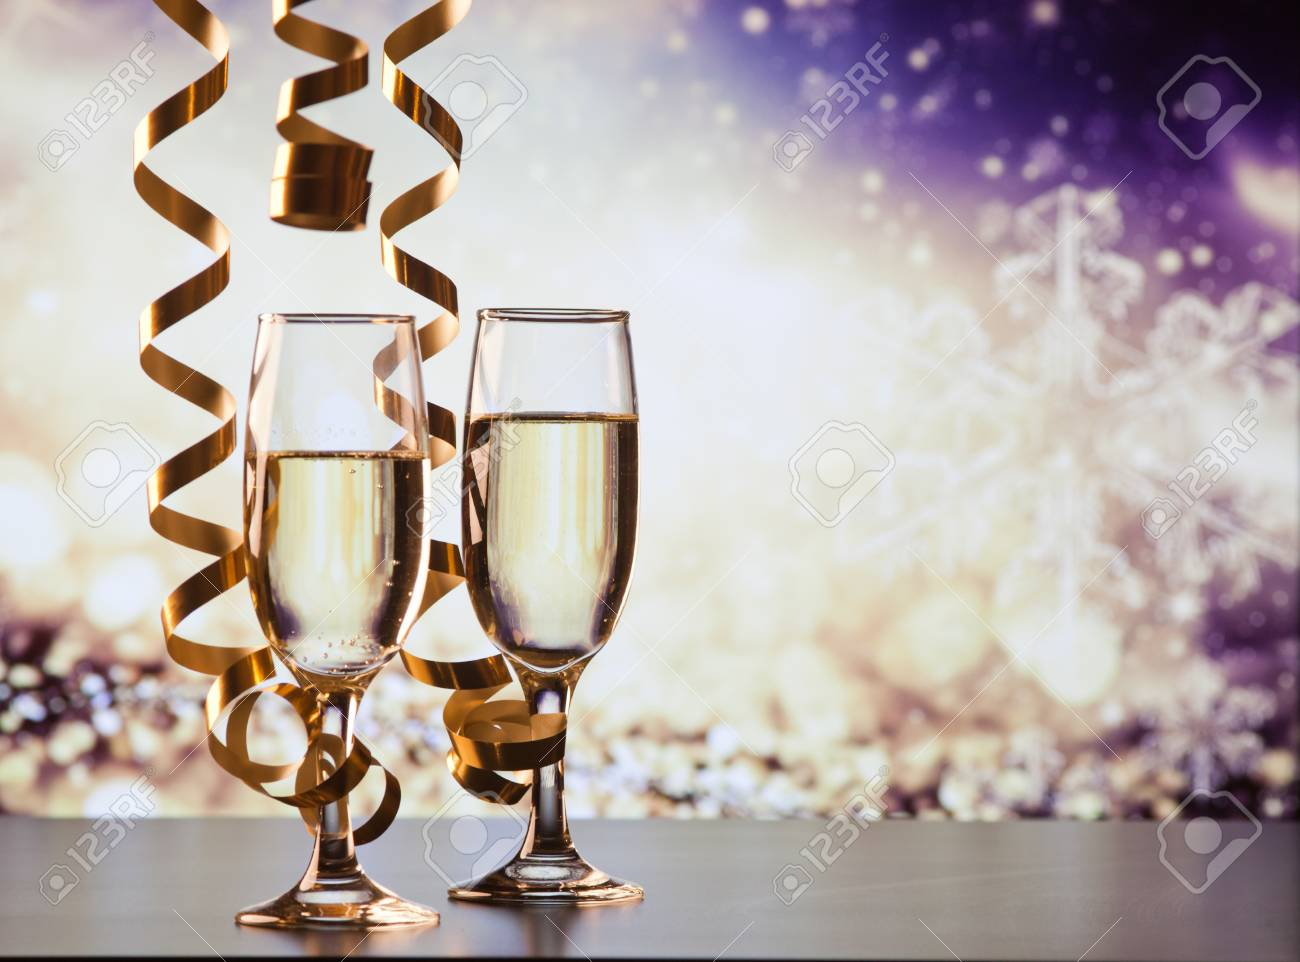 two champagne glasses with ribbons against holiday lights and fireworks - New Year celebrations - 89395740